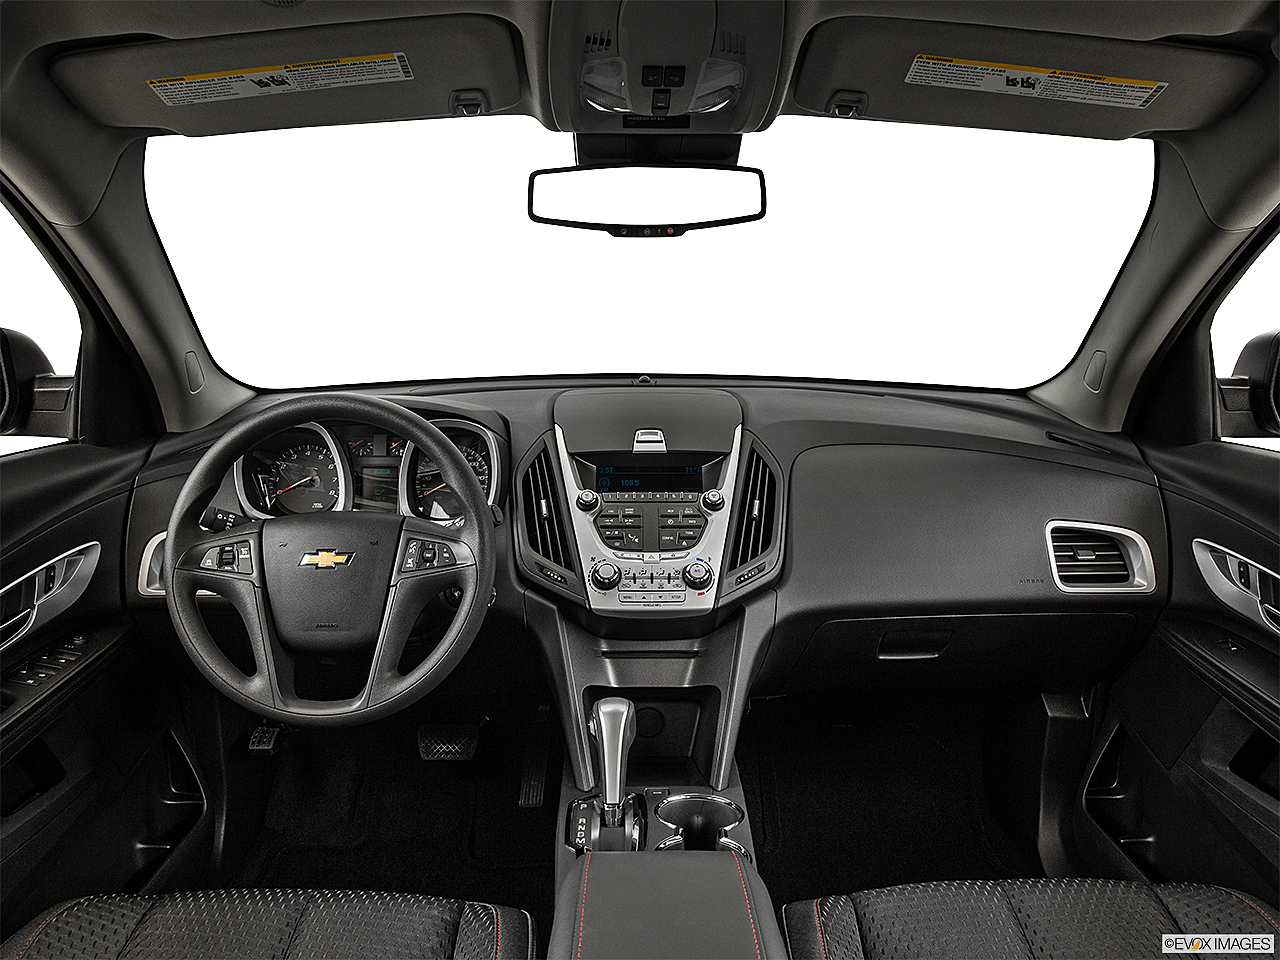 2015 chevrolet equinox ls 4dr suv - research - groovecar